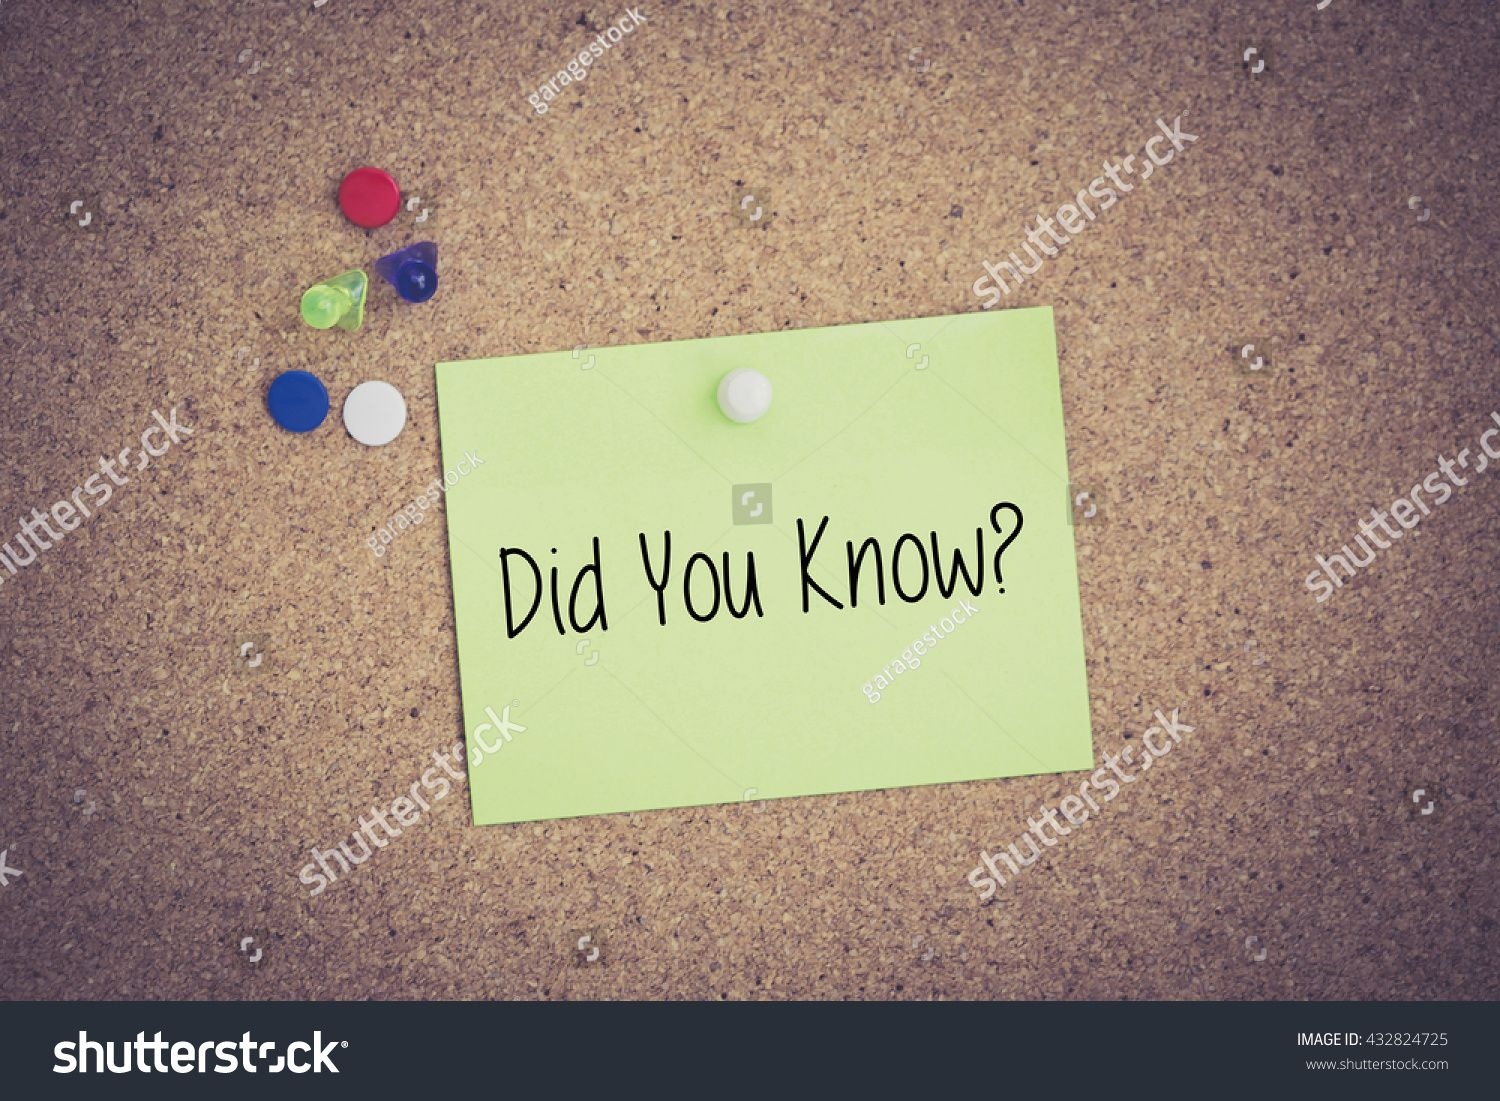 Did You Know Written On Sticky Note Pinned On Pinboard